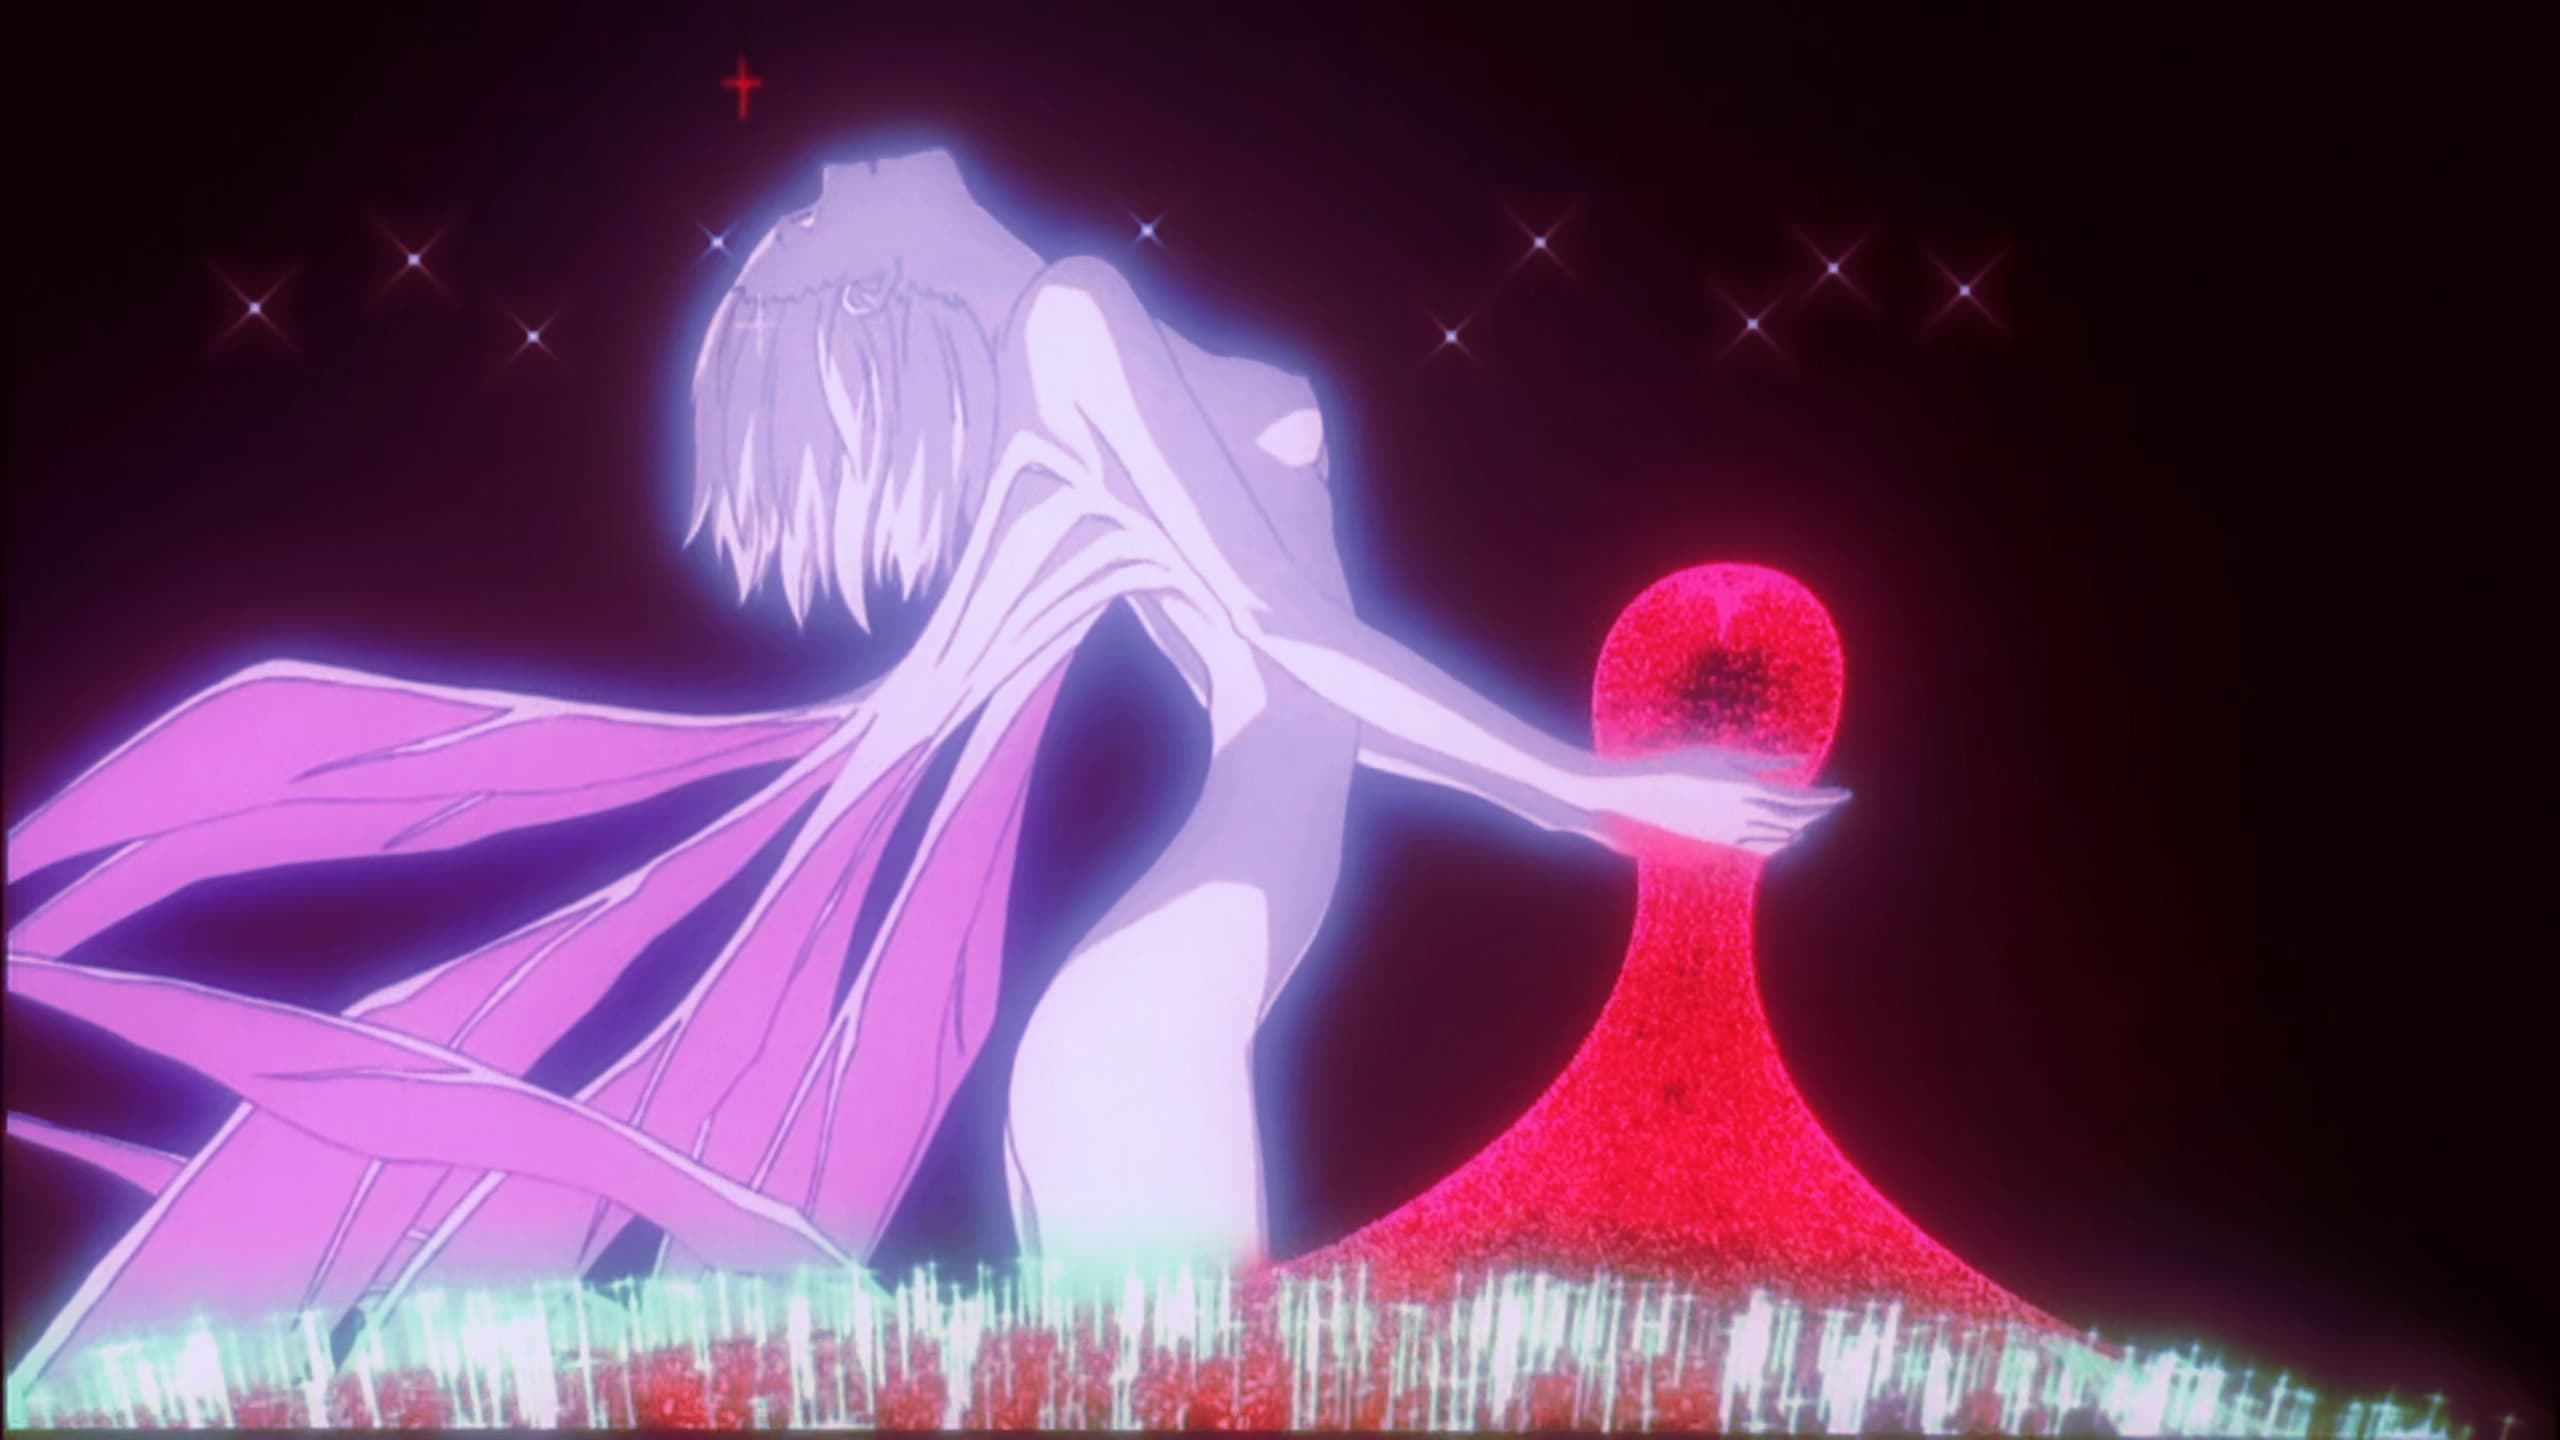 The End of Evangelion backdrop